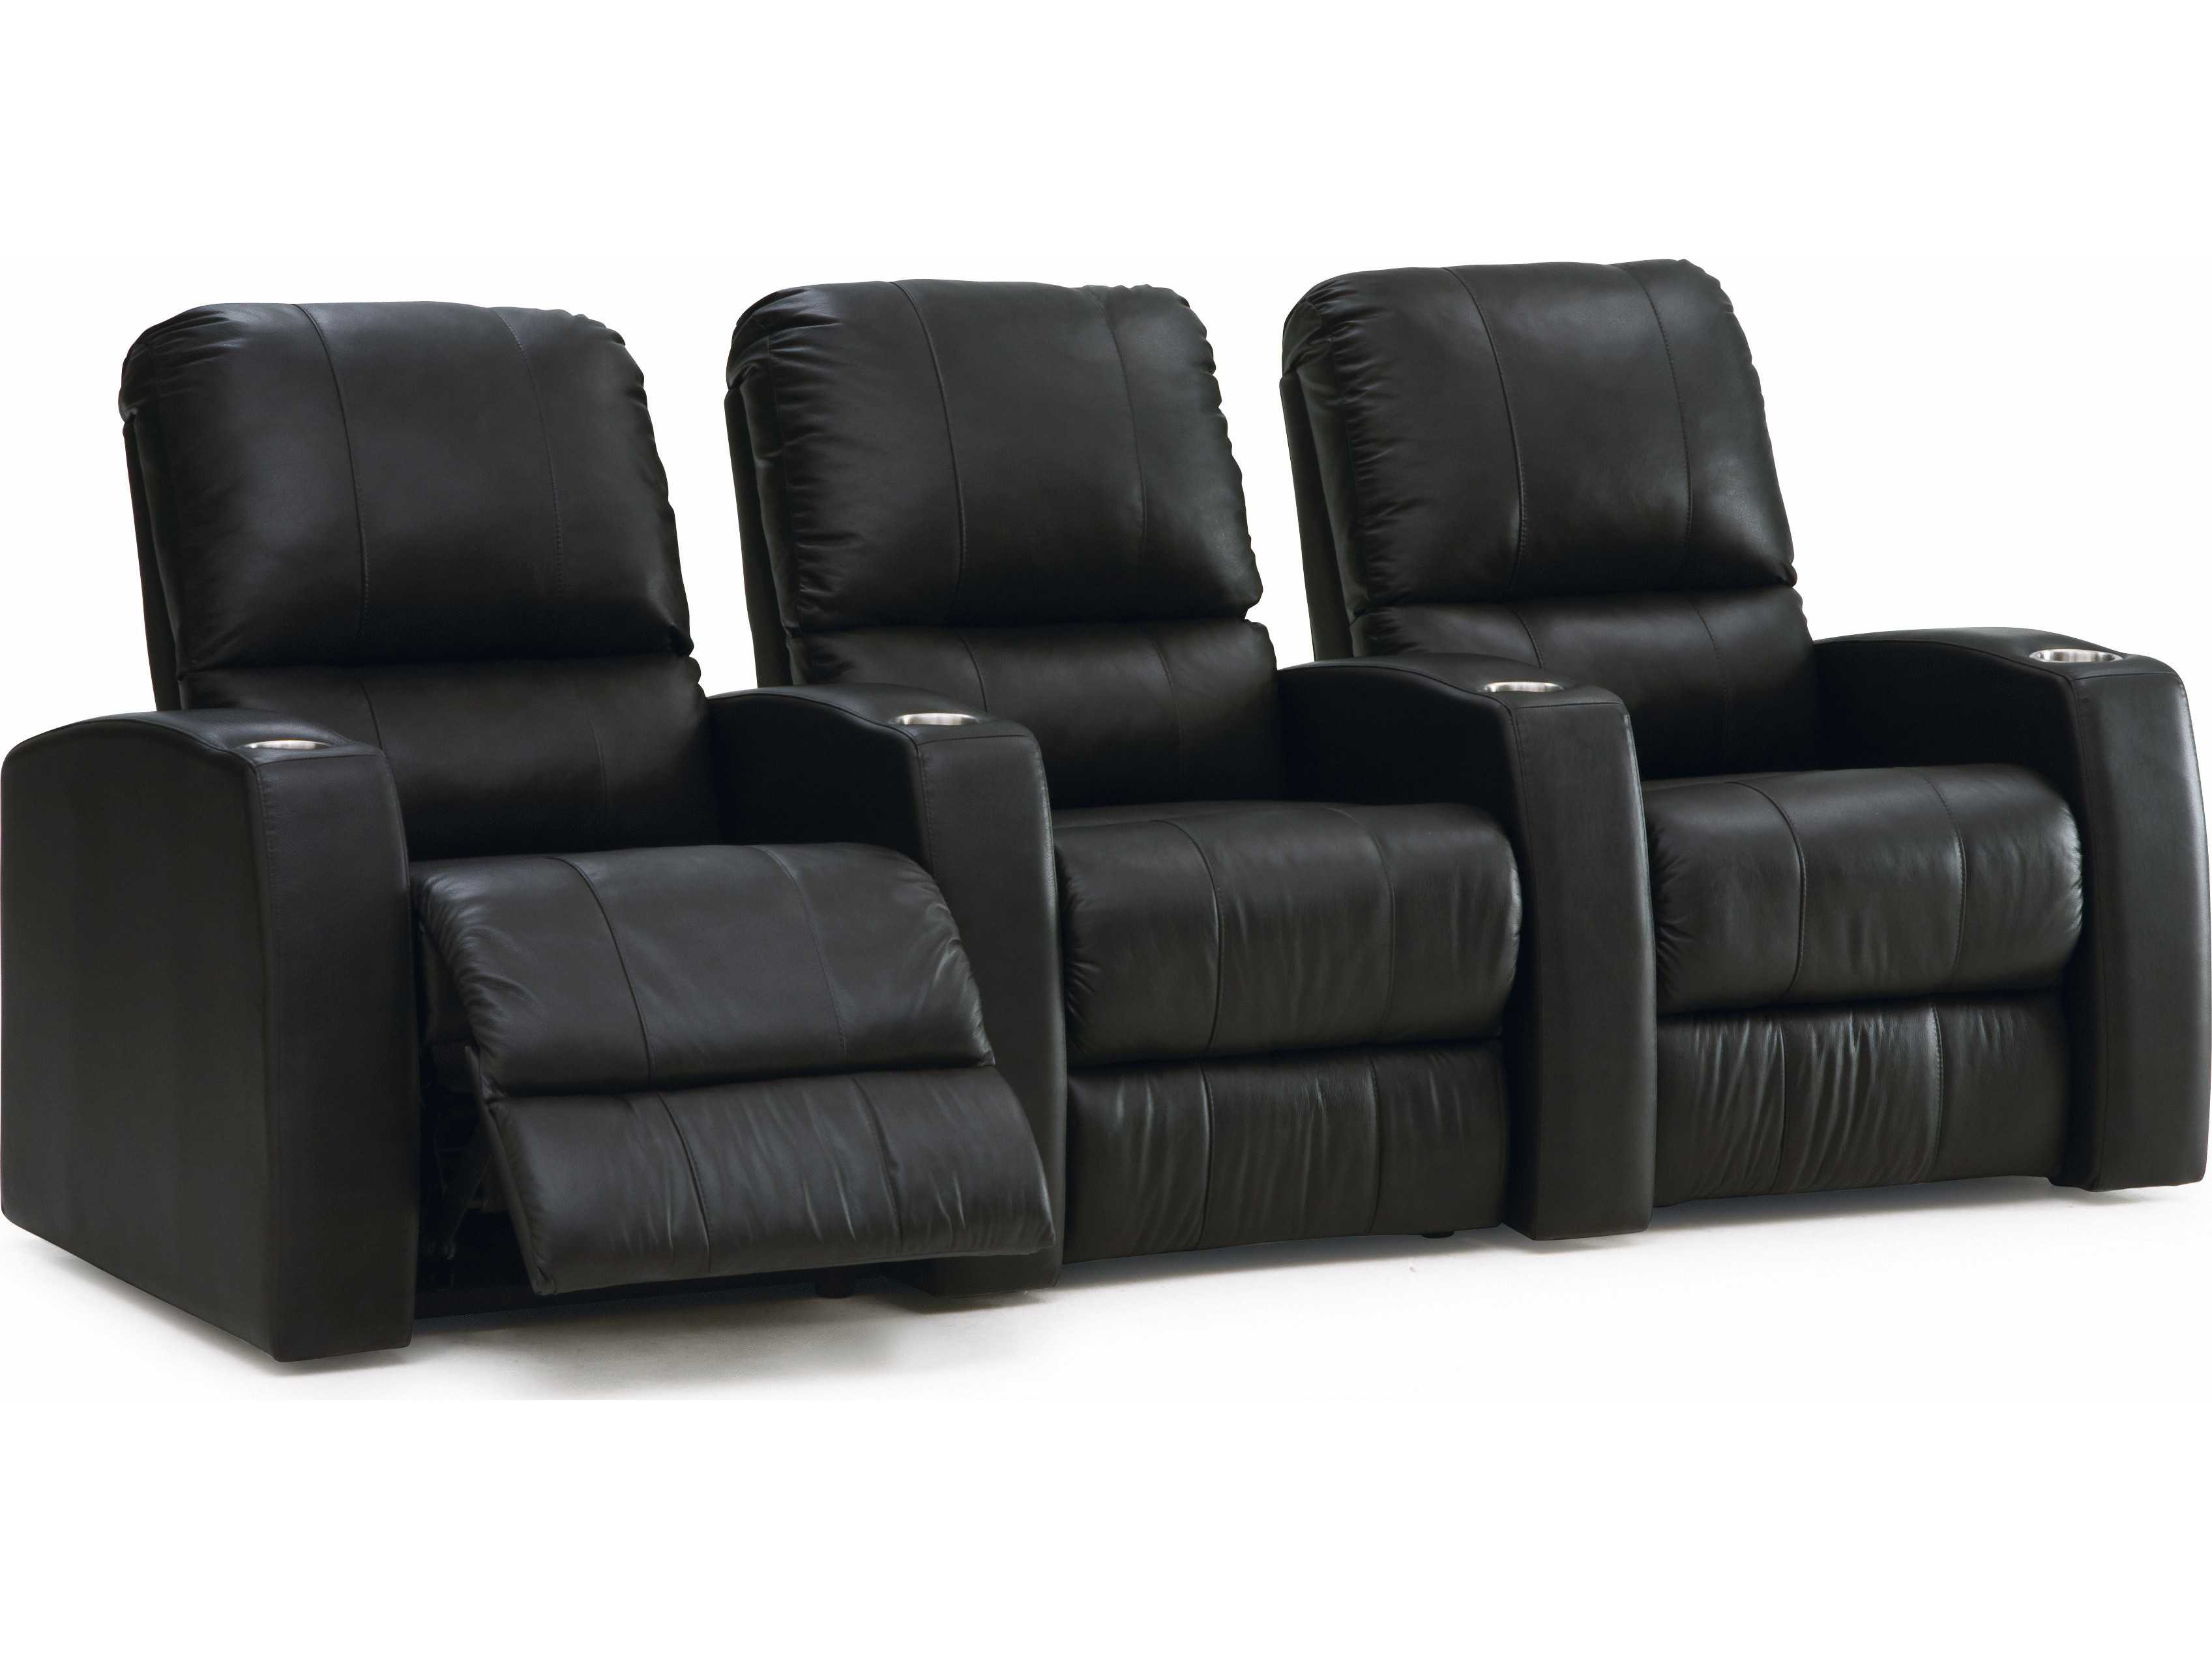 4 person reclining sofa how to make table legs palliser pacifico hts powered home theater